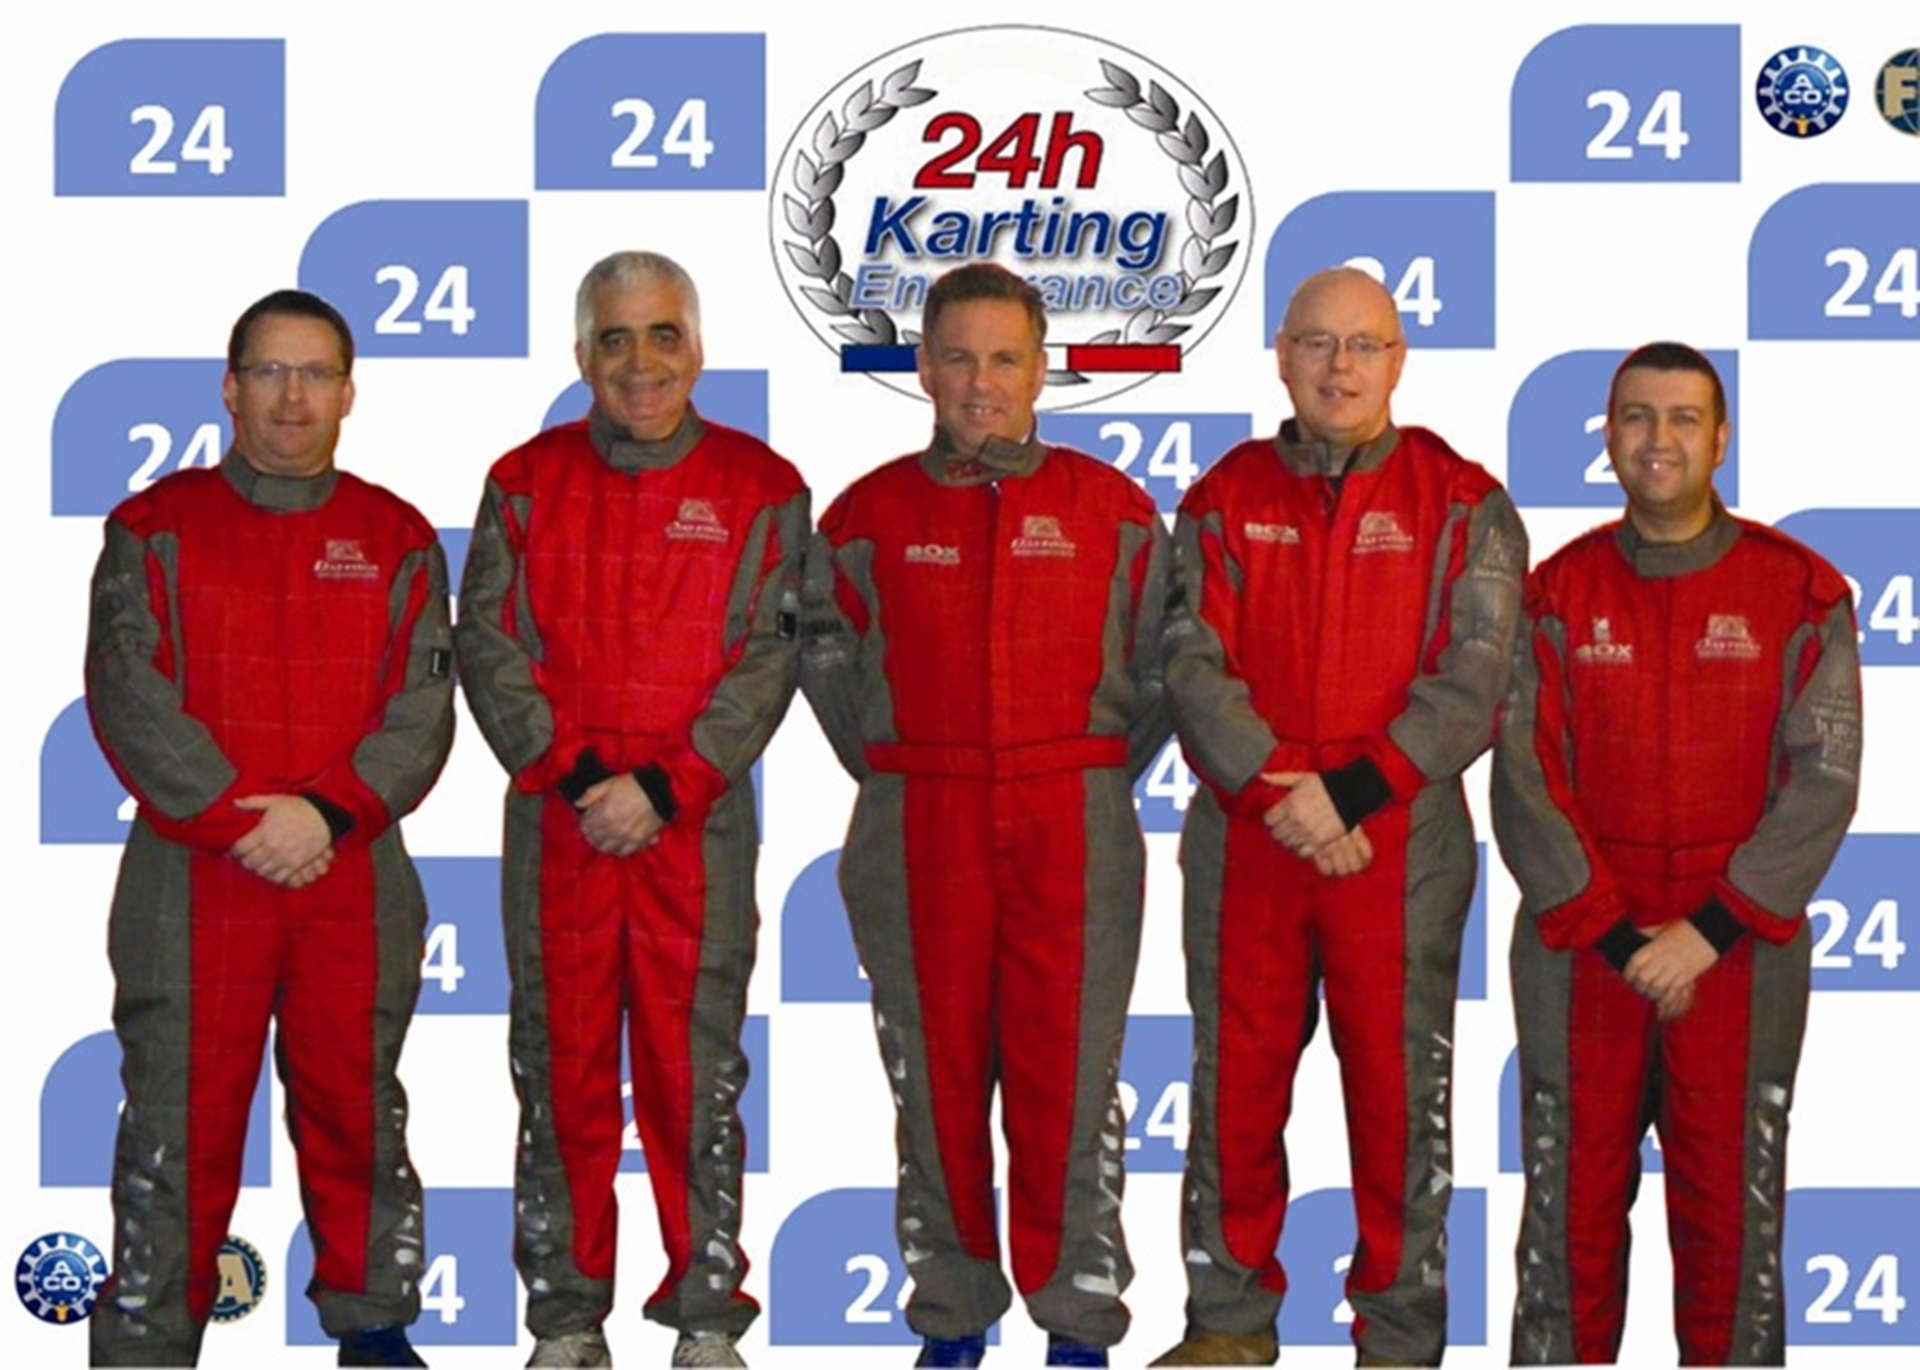 Le Mans Karting team